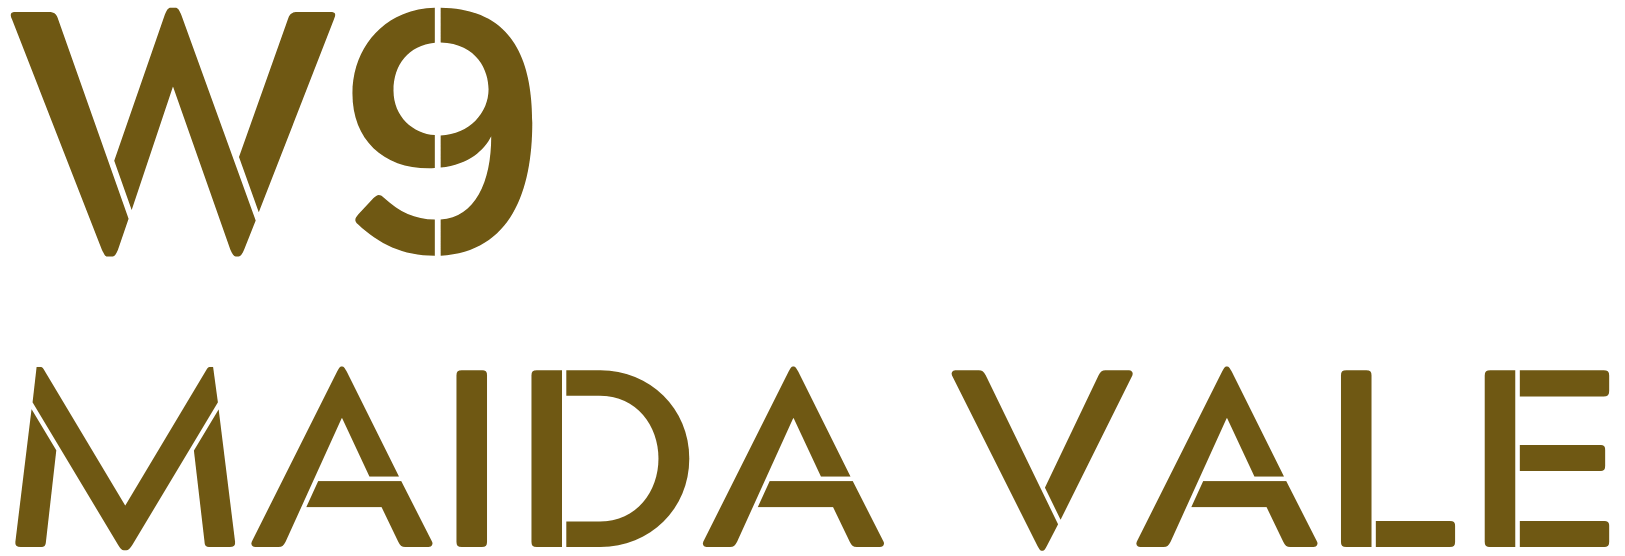 W9 Maida Vale Logo in Gold